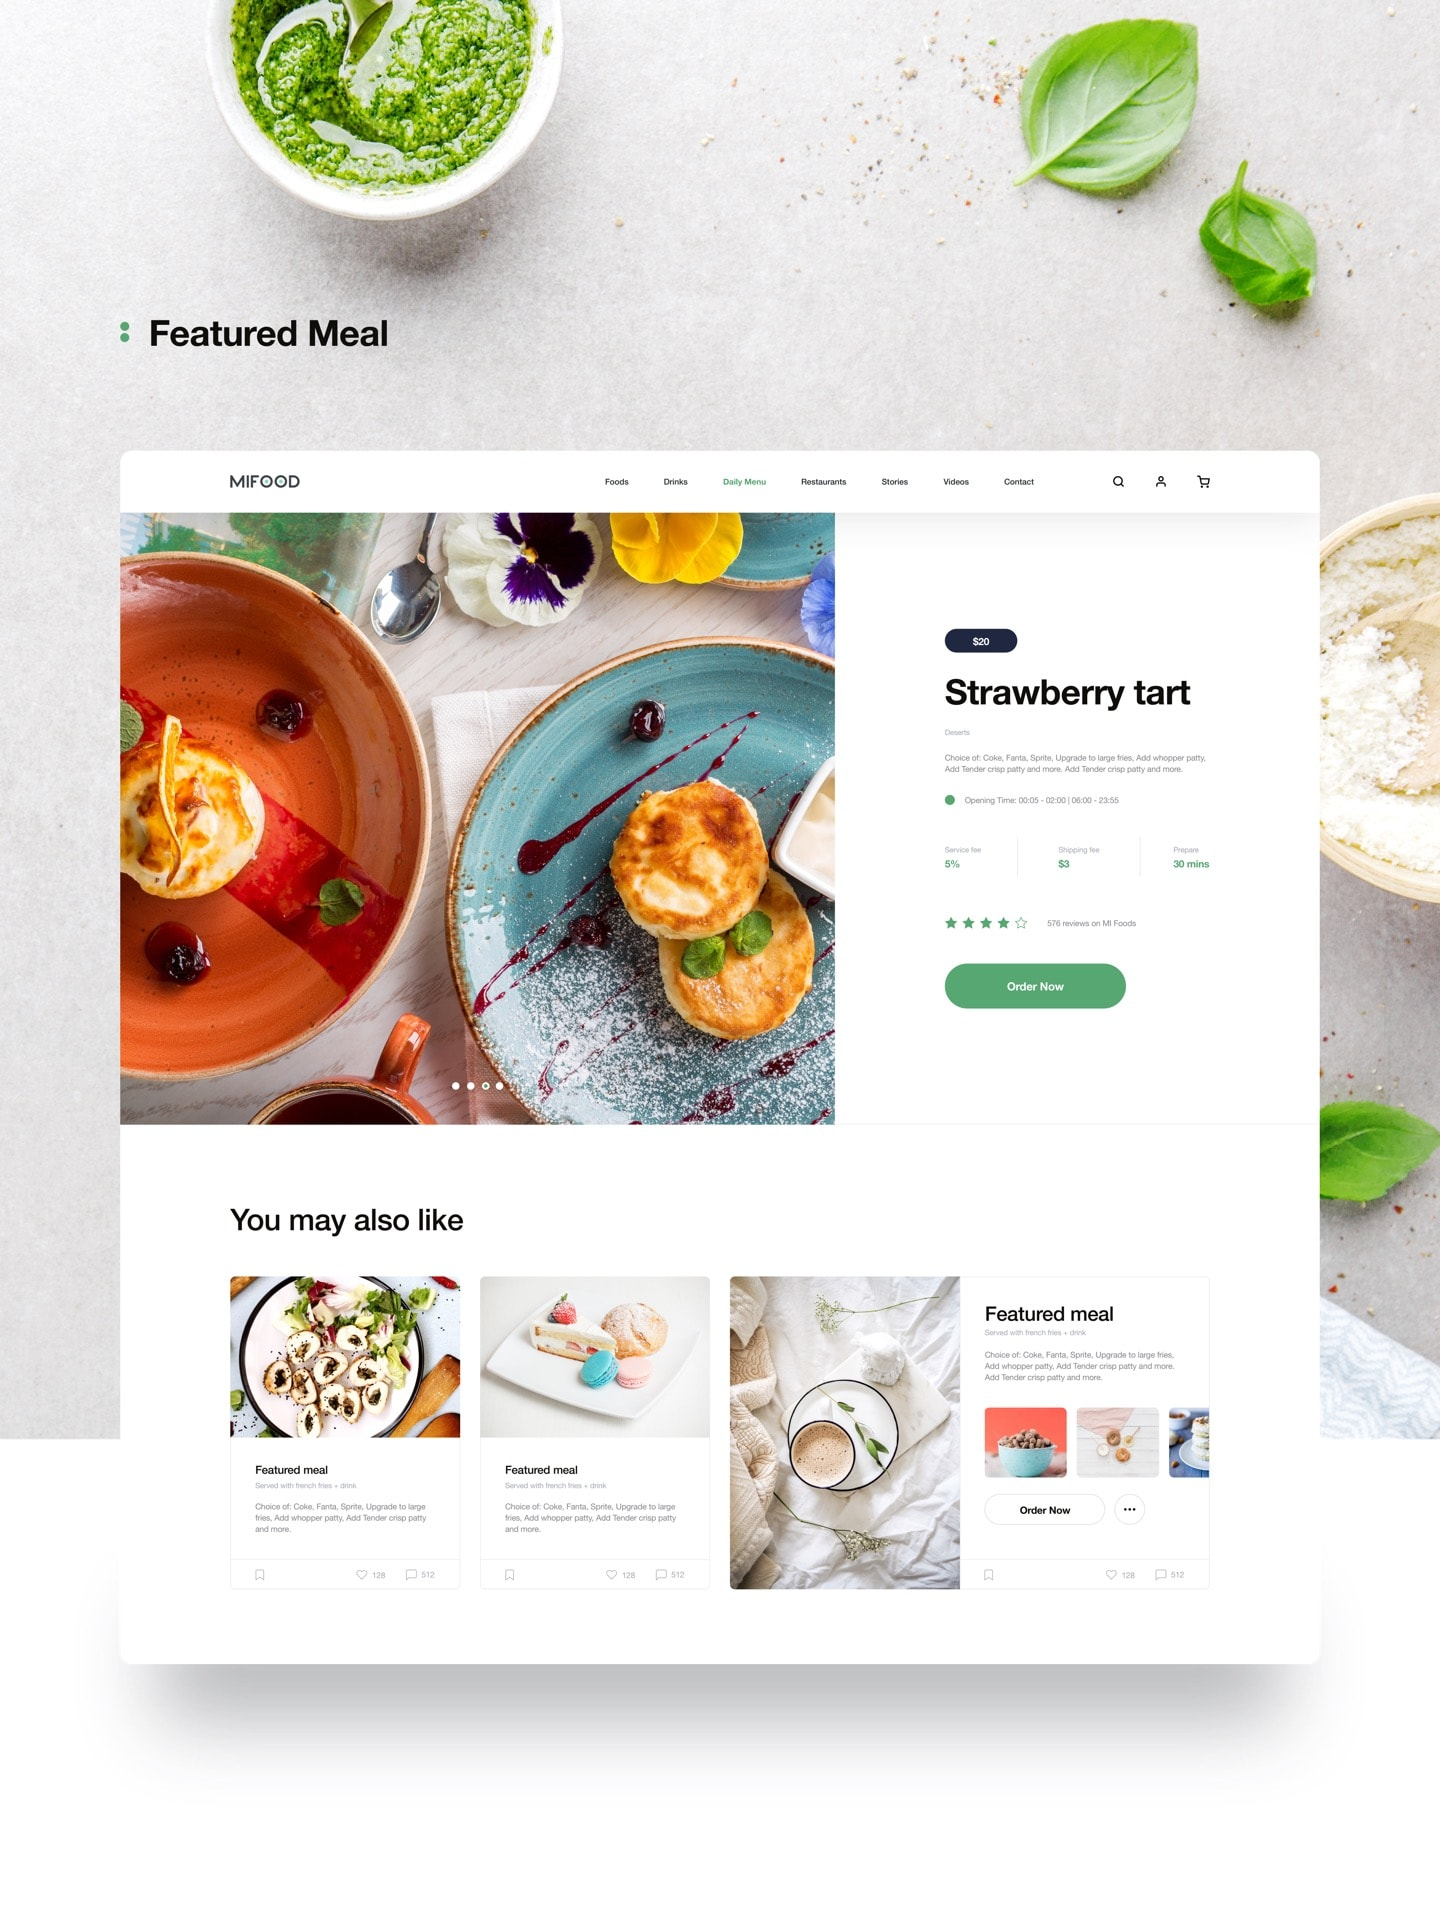 mifoods_freeui.design_04 - foods 2